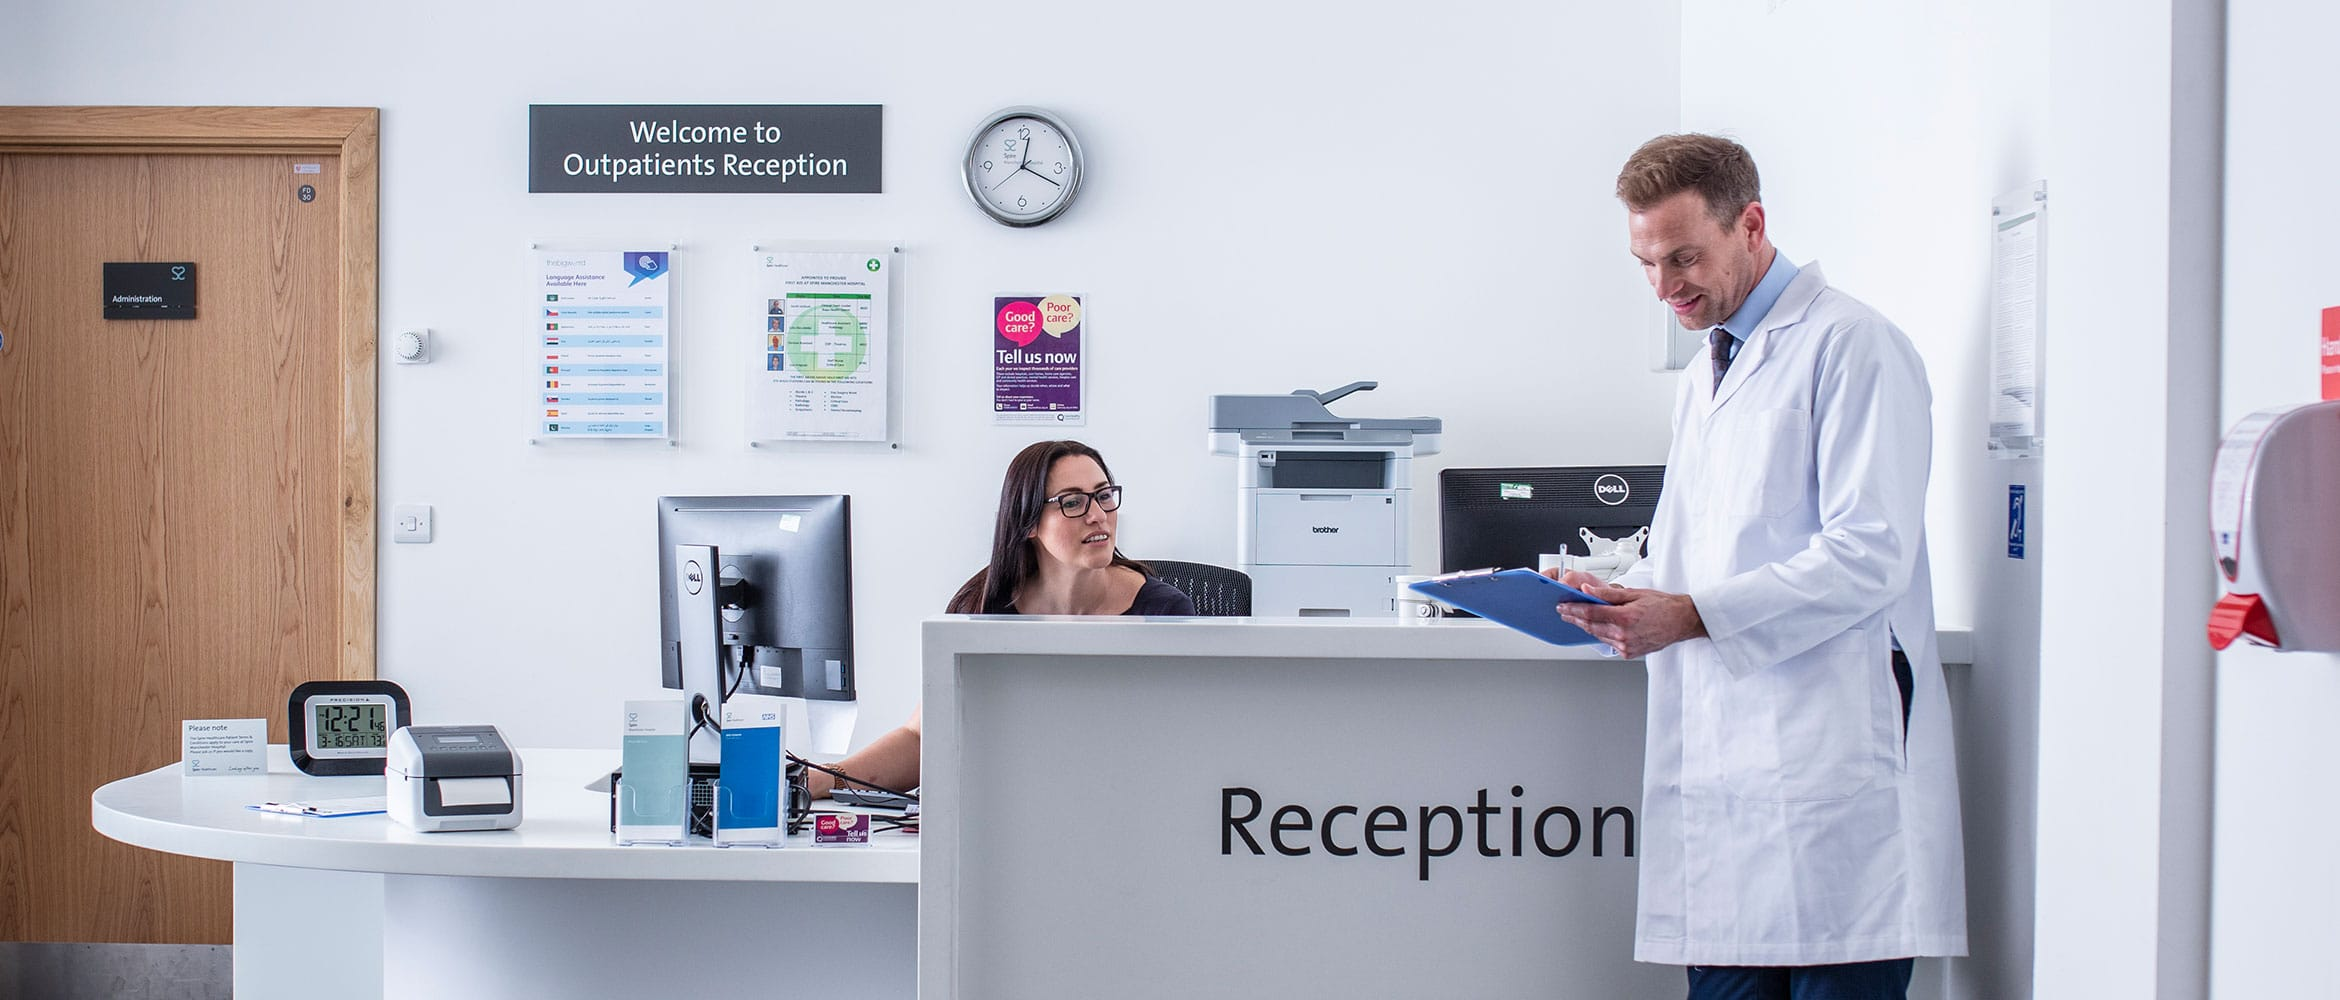 Hospital reception with female receptionist talking to doctor in white coat